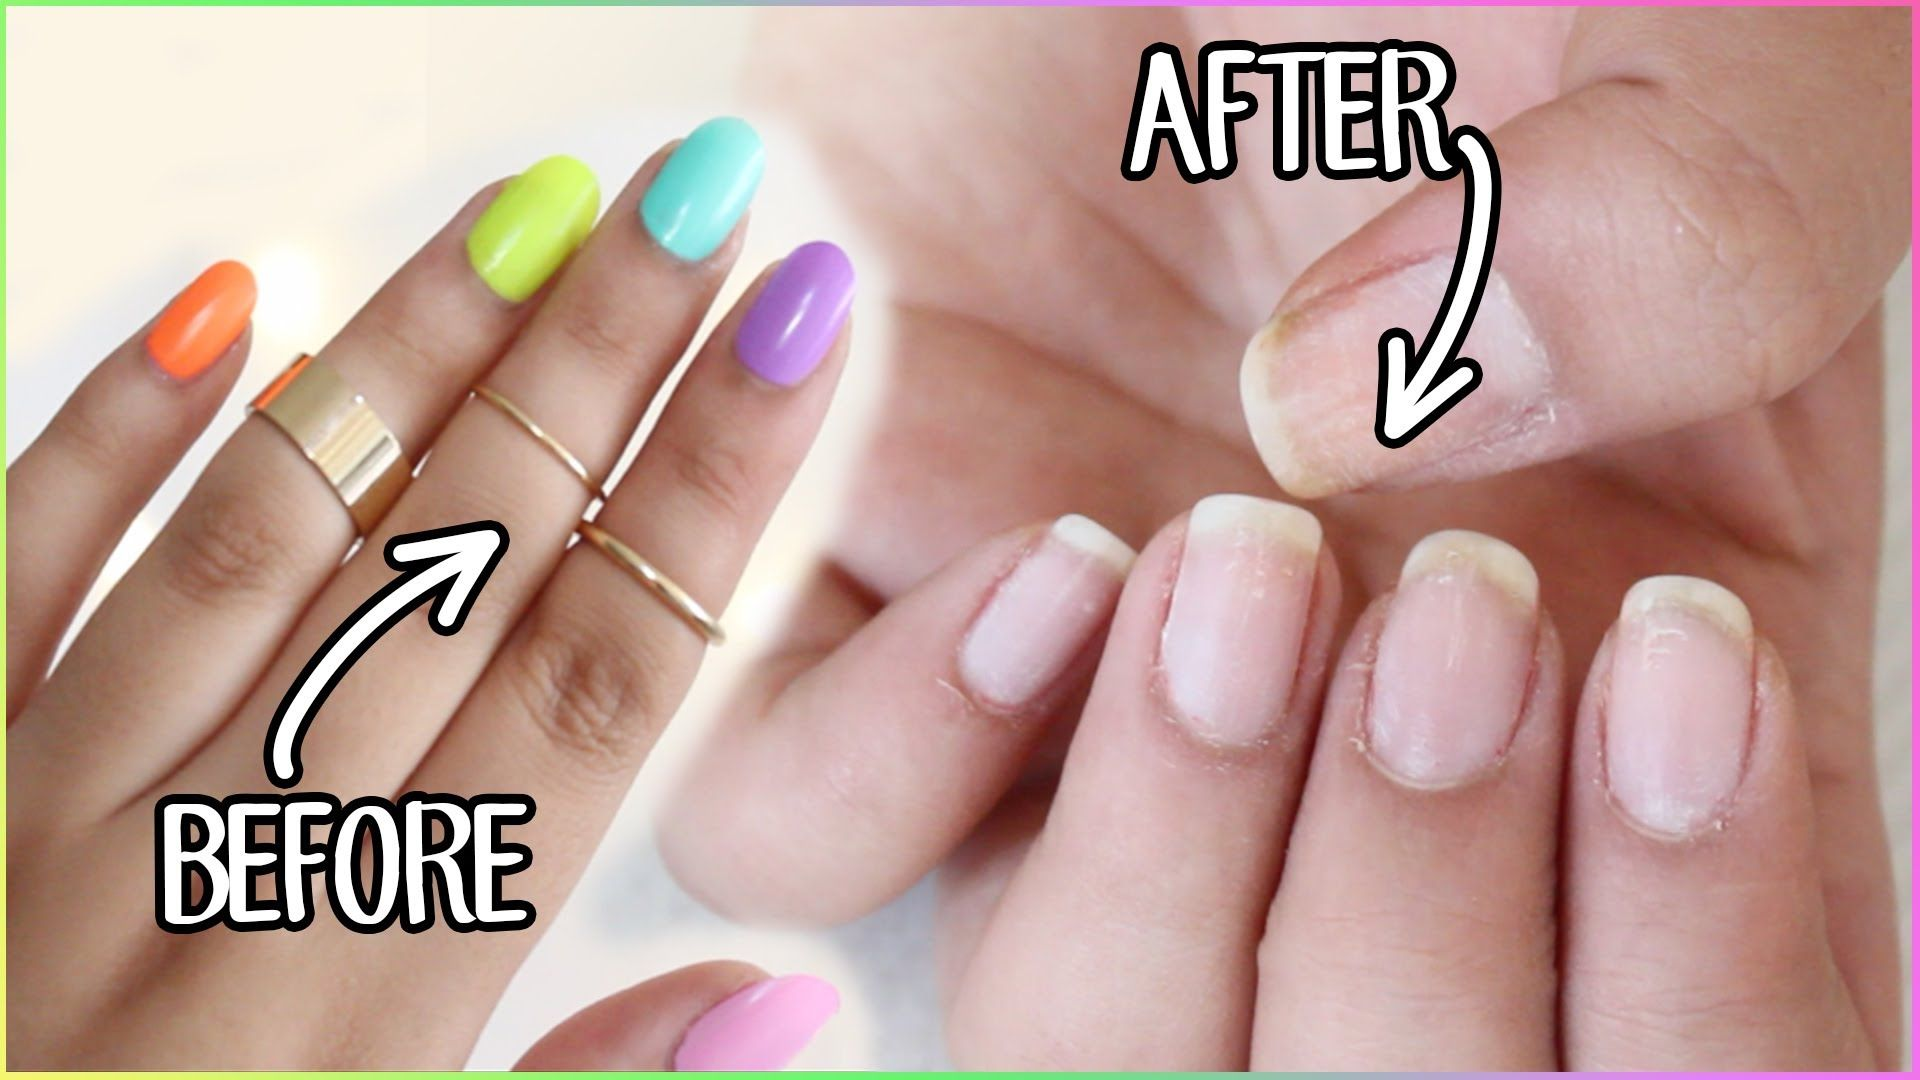 How To Remove Fake Nails Kiss Glue On Nails Gel Nails Gel Polish Etc Kiss Glue On Nails Gel Nail Removal Fake Nails